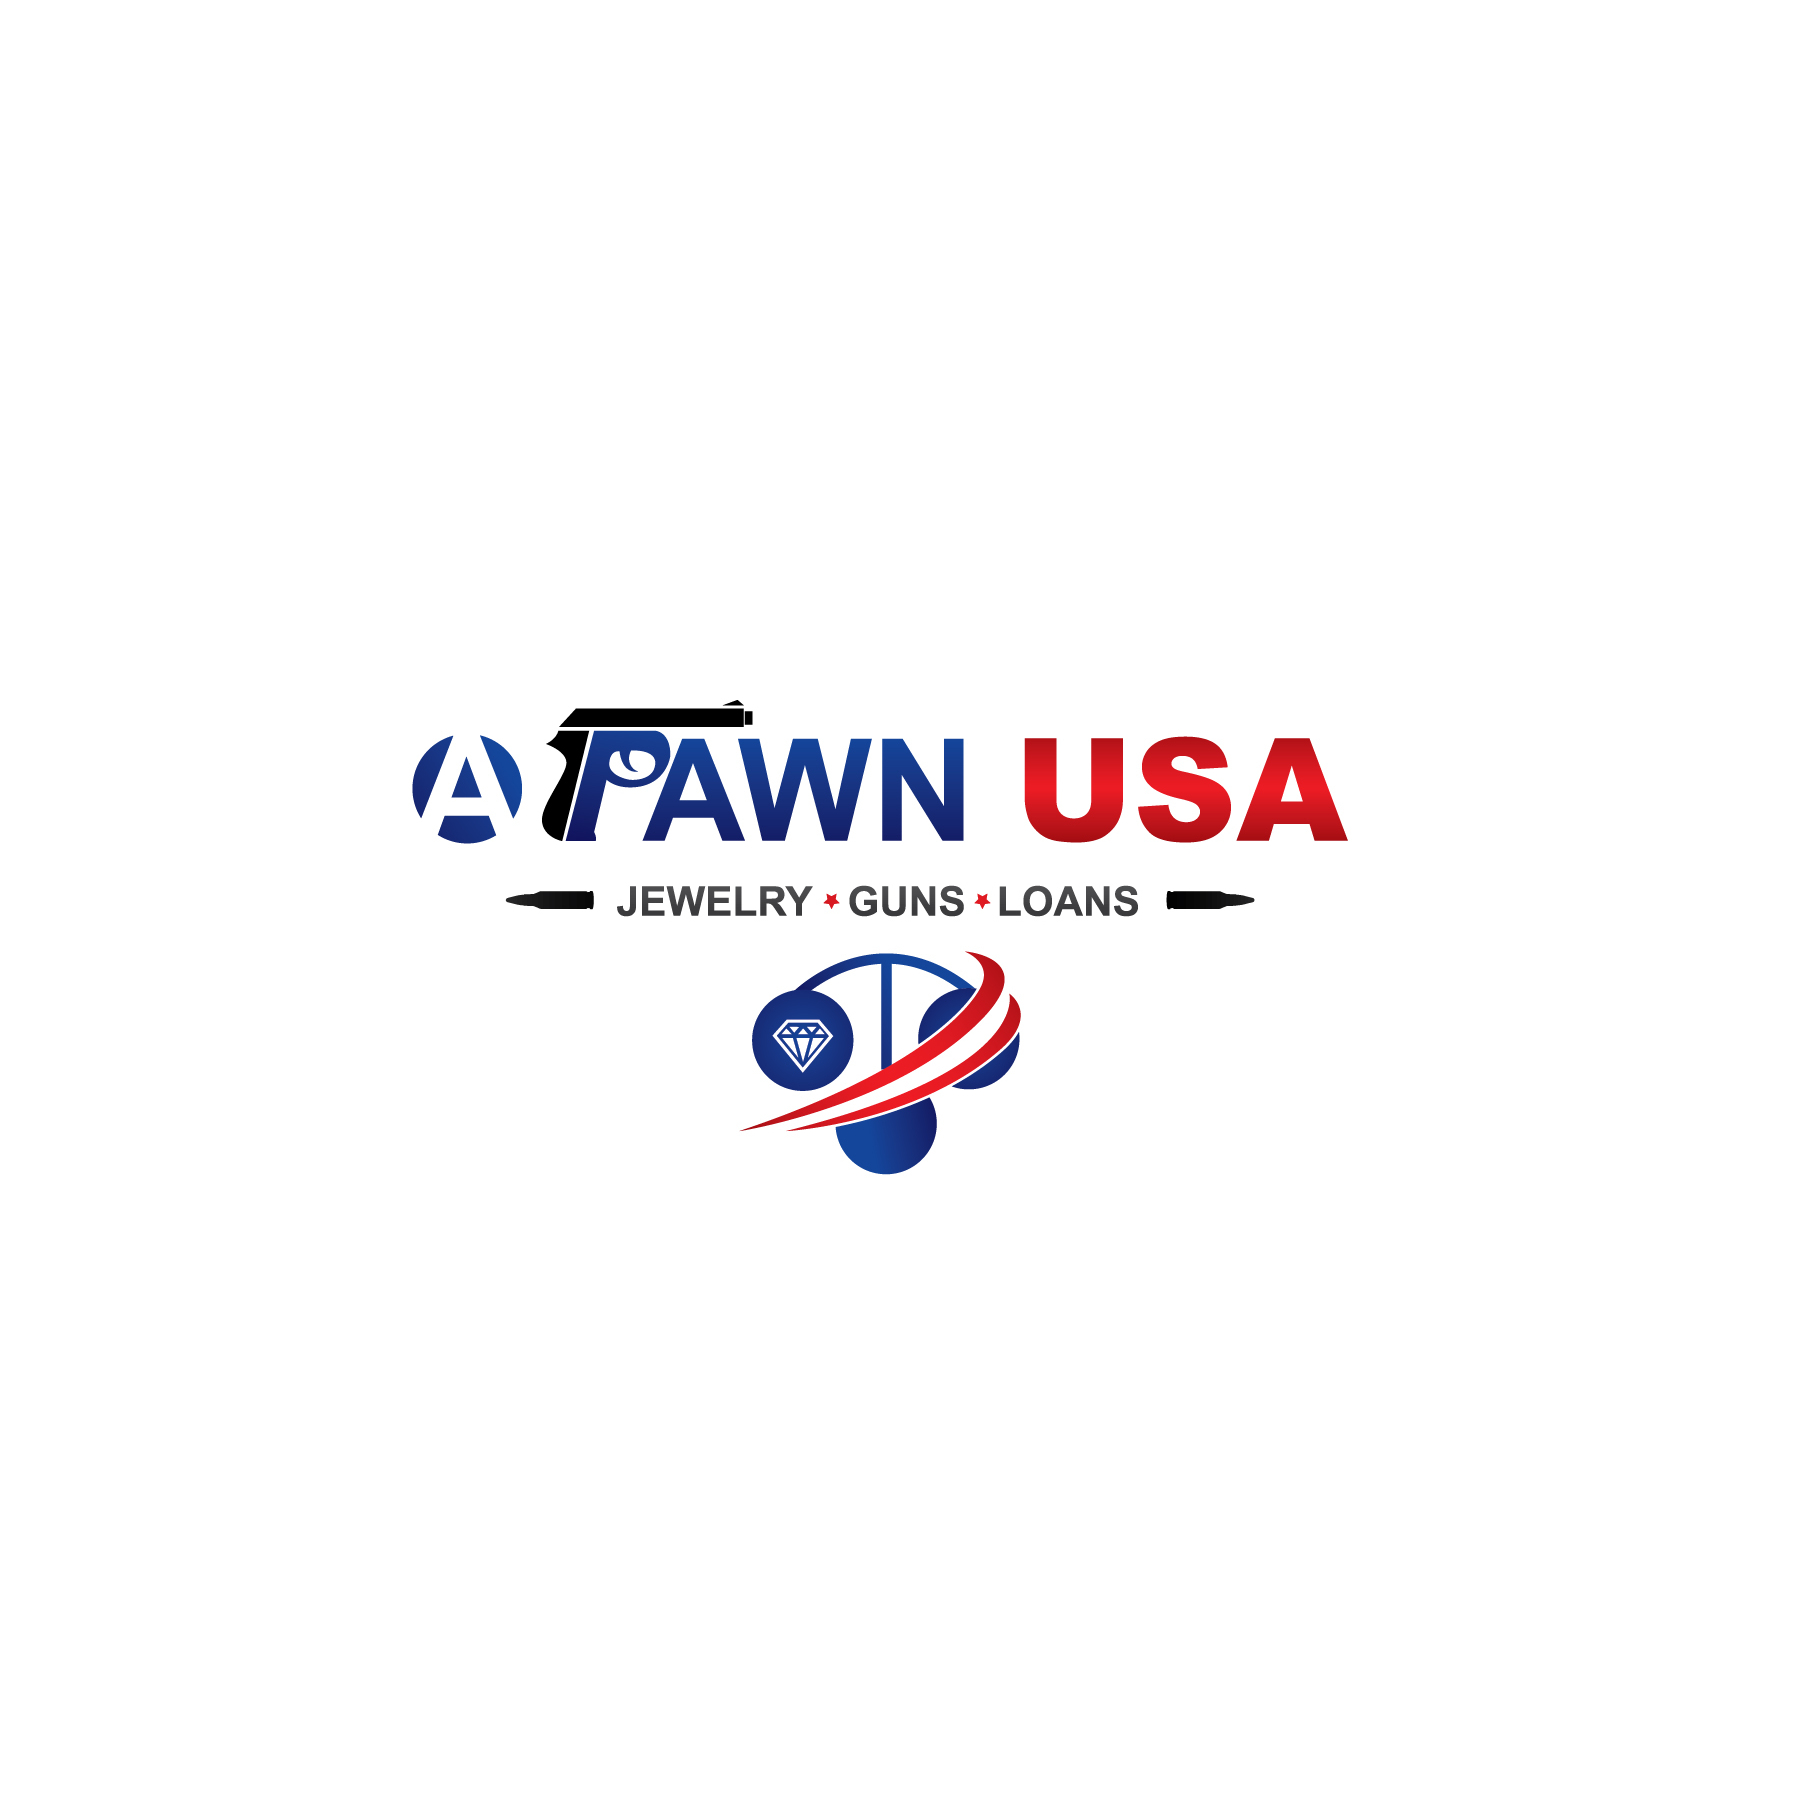 A Pawn USA | Clermont | Guns & Ammo | Pawn shops | Cash For Gold | Loans | Engagement Rings